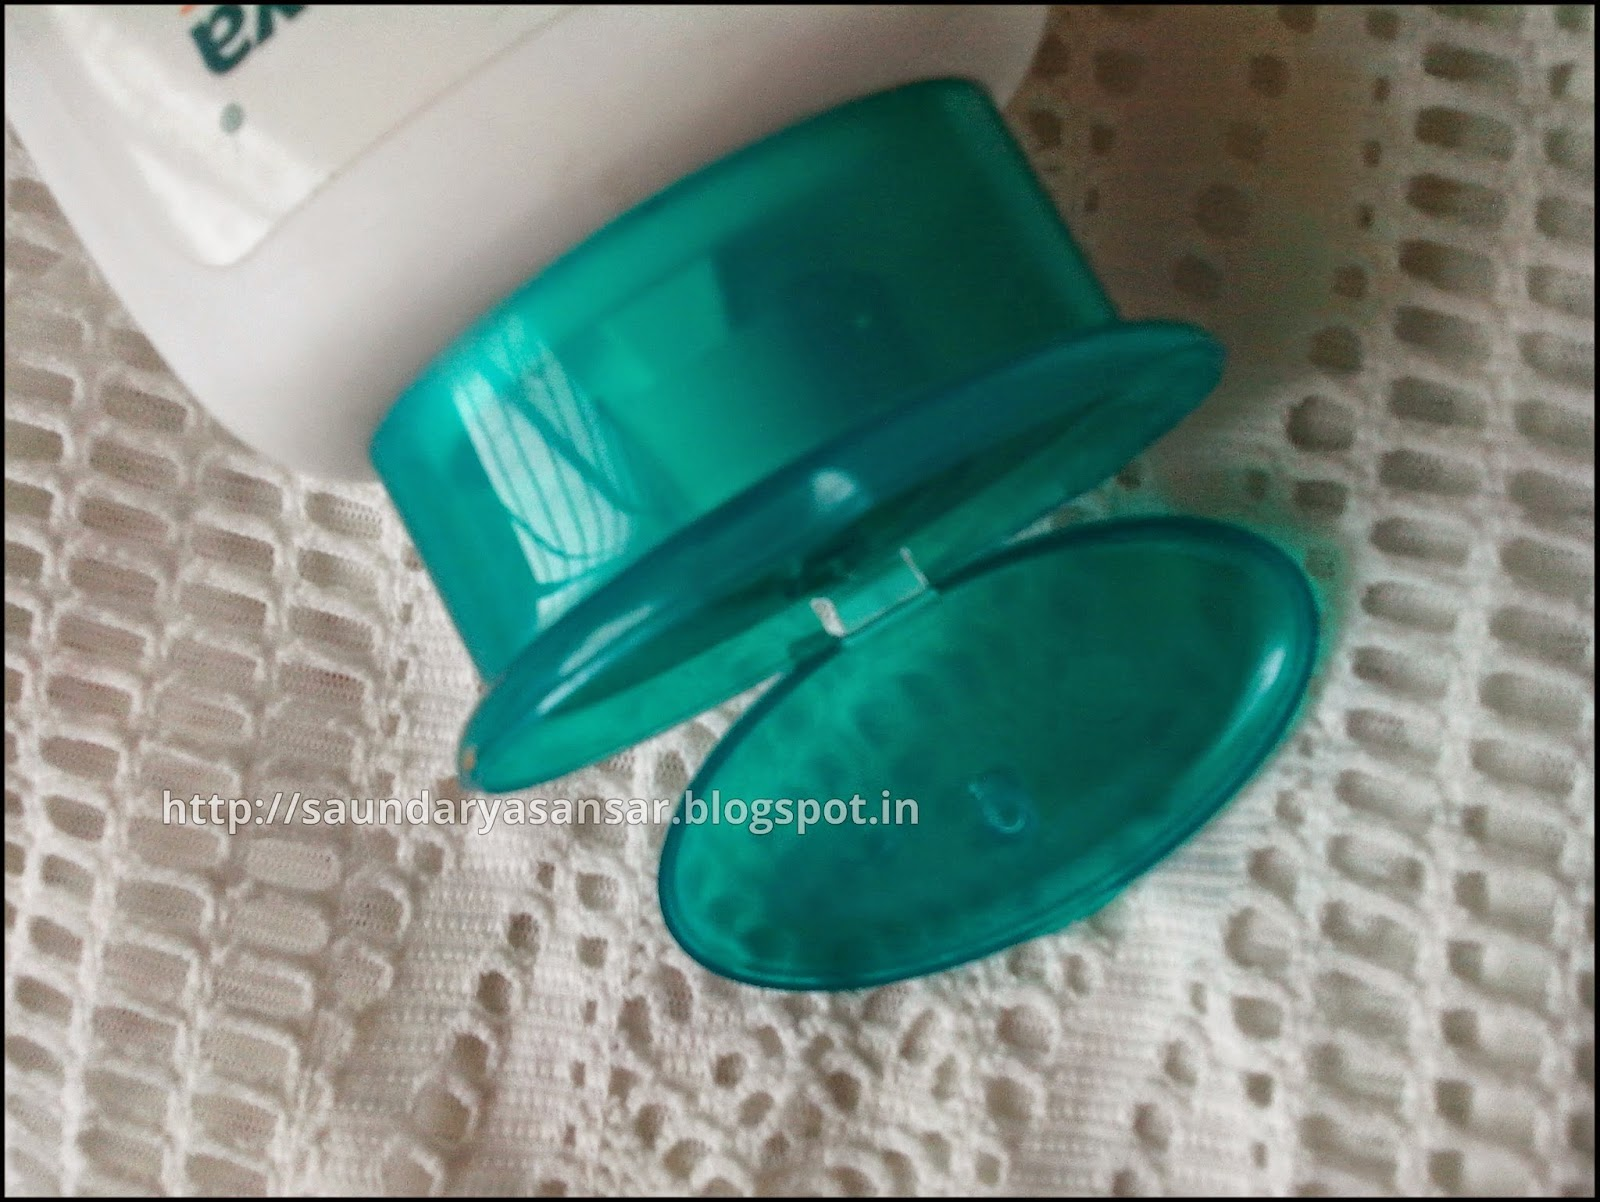 Himalaya Gentle Baby Shampoo-Review